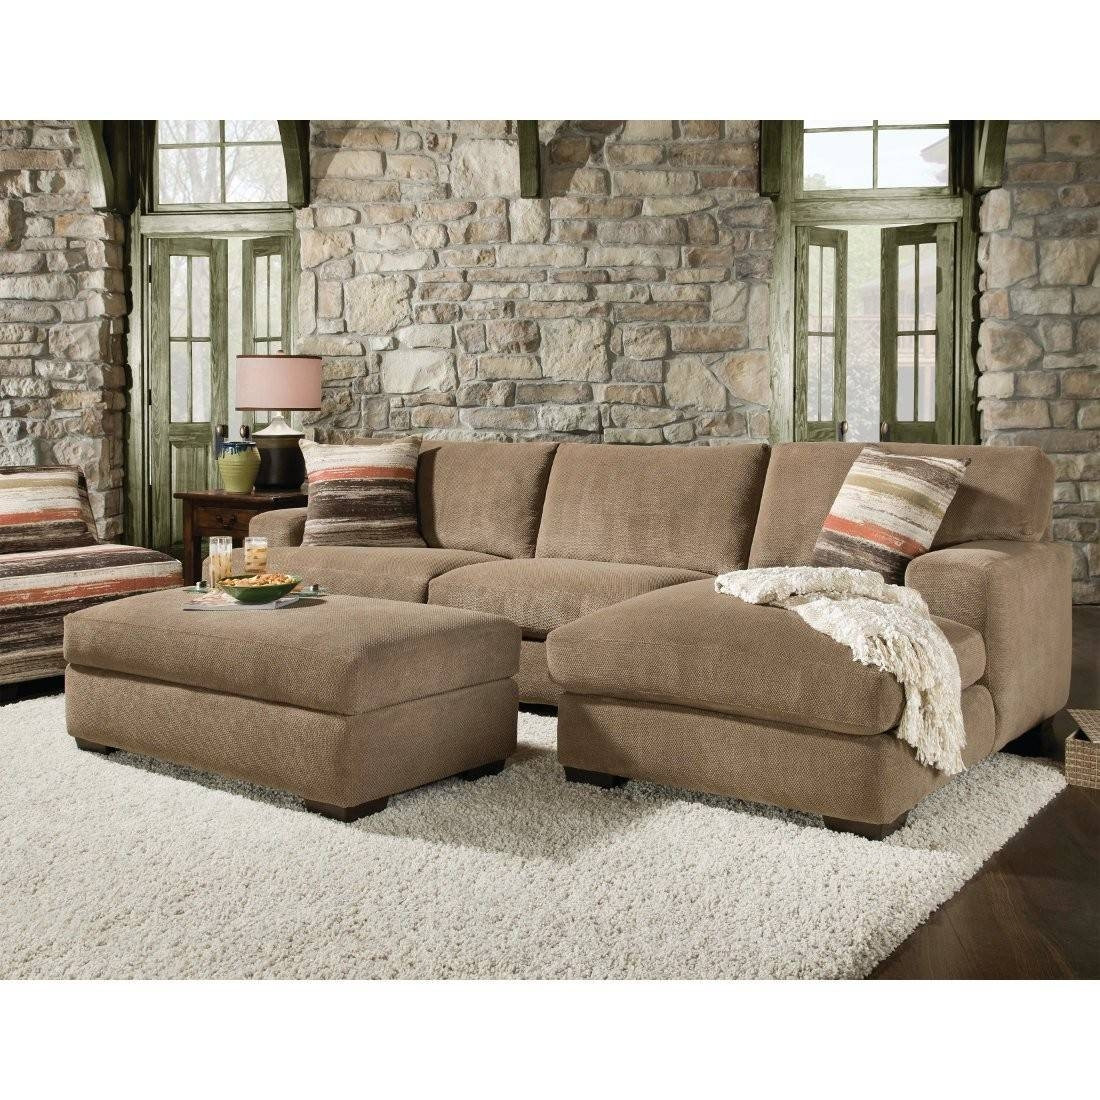 2 Piece Sectional Sofa With Chaise Cover | Tehranmix Decoration pertaining to Sectional Sofa With Large Ottoman (Image 1 of 30)